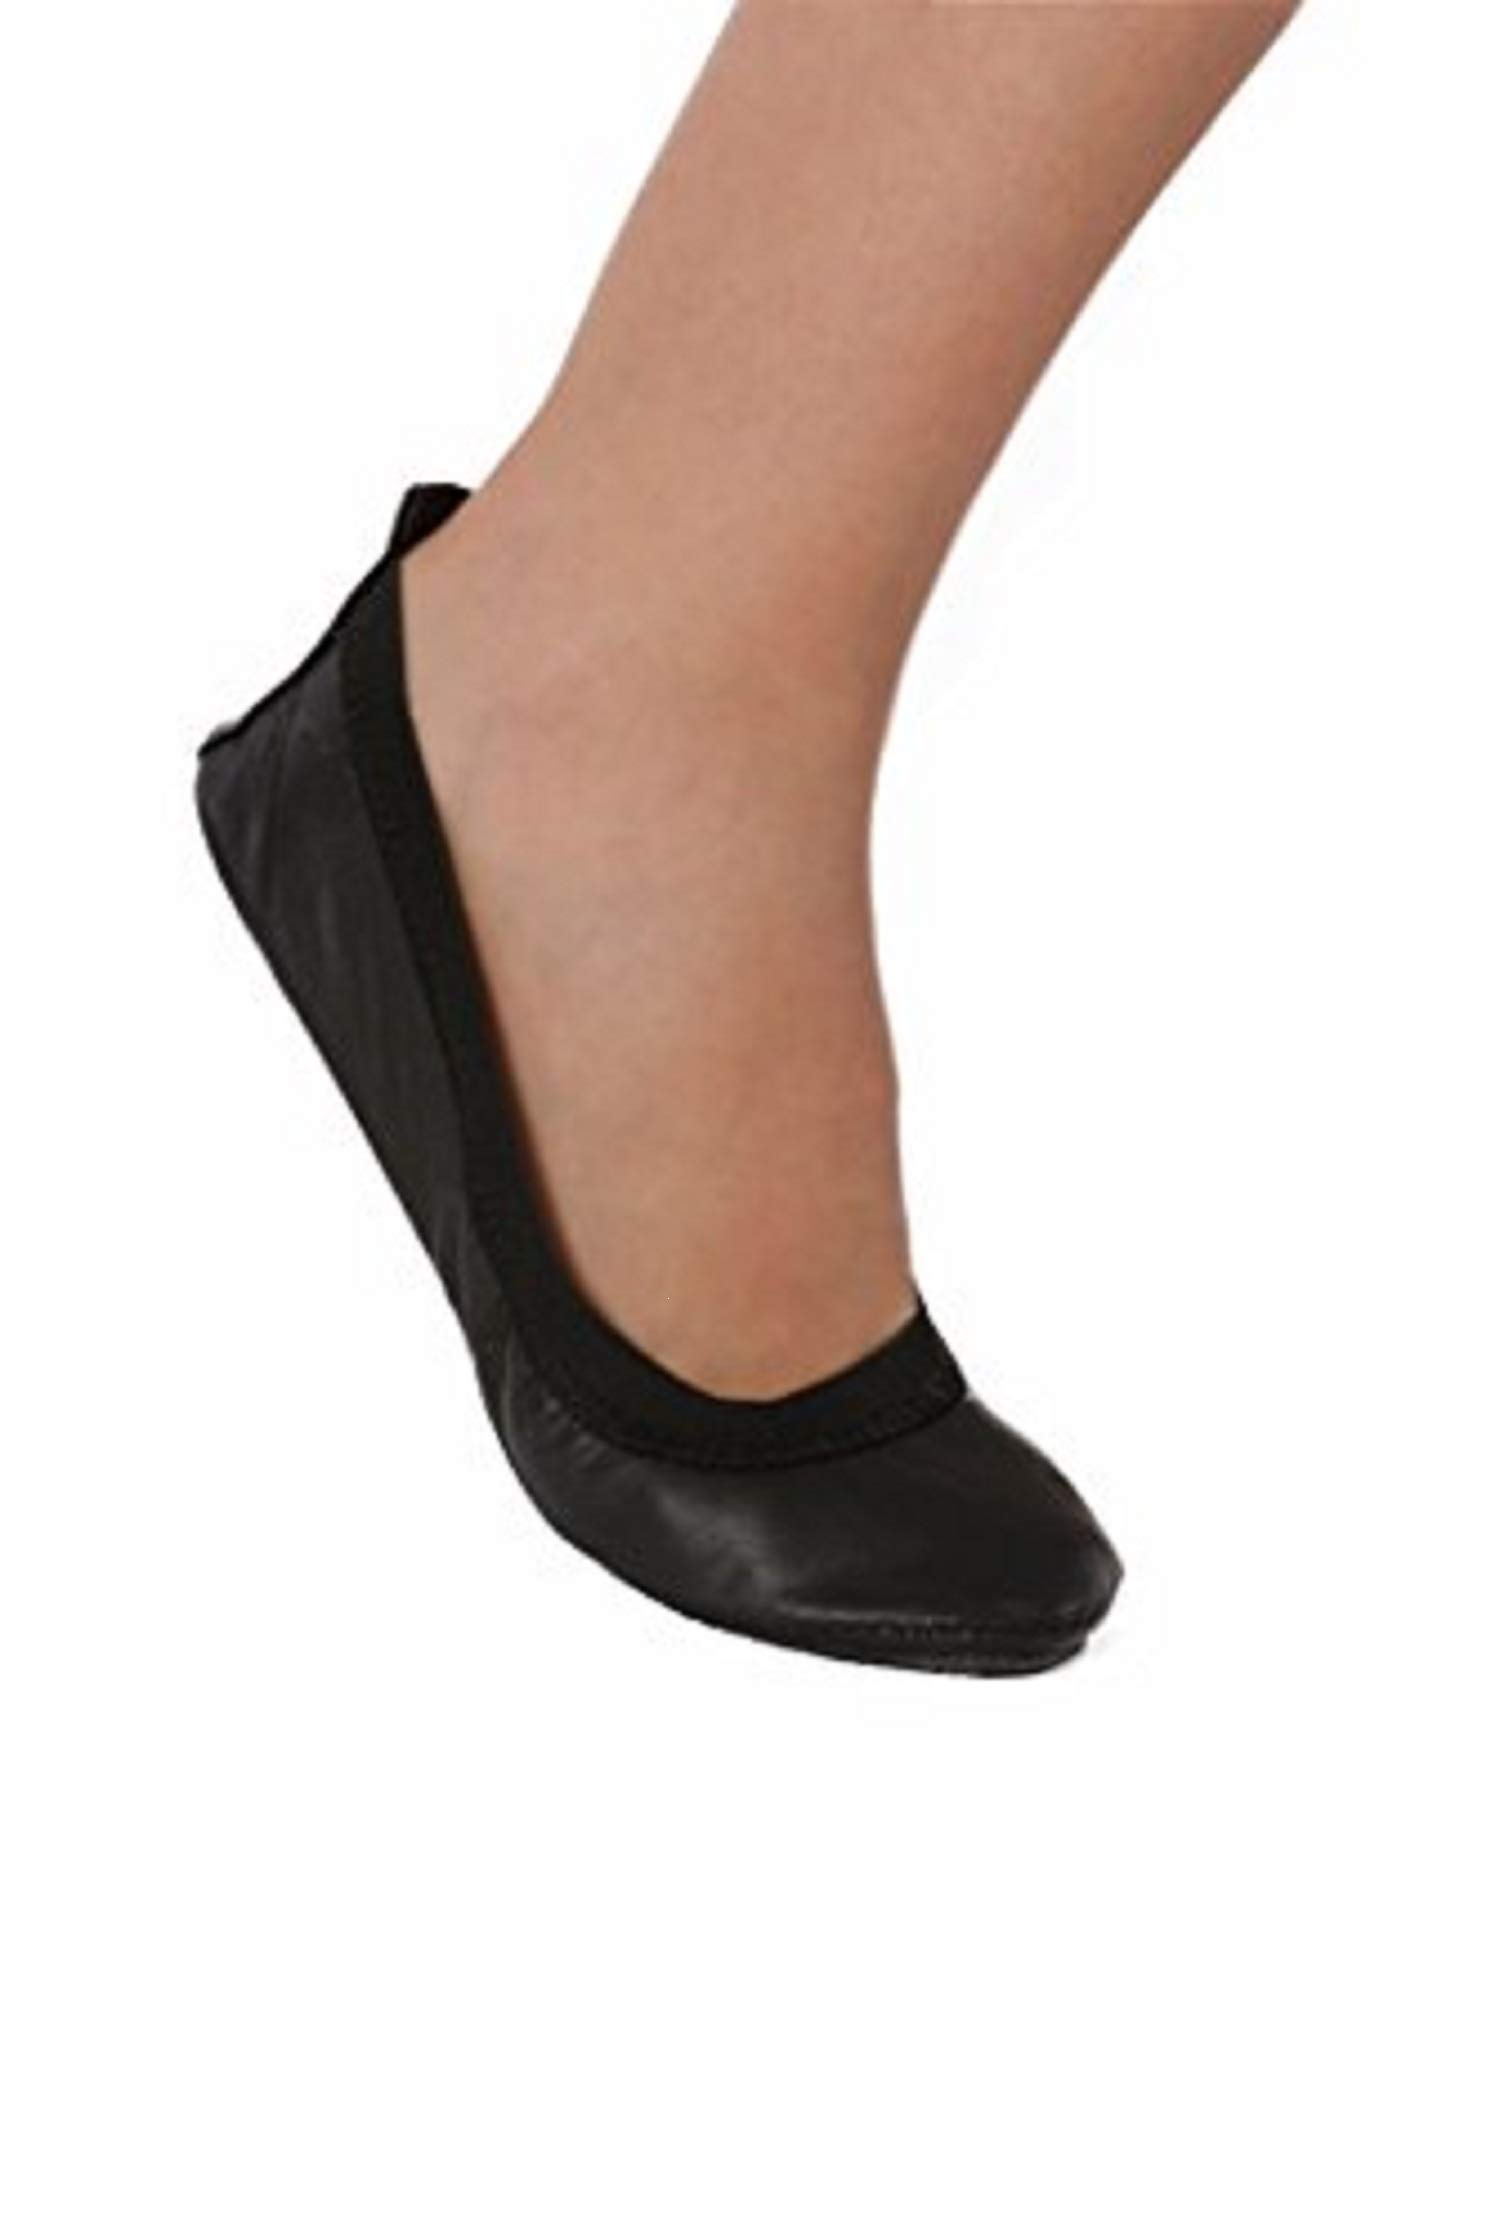 Fold up Ballet Flats - Foldable Shoes - Purse Pack Opens to Reveal a Handy Tote Bag. Foldable Ballet Flat Shoes in Black Silver.Portable Travel Foldable Ballet Flats! (Small (Size 5-6), Black)